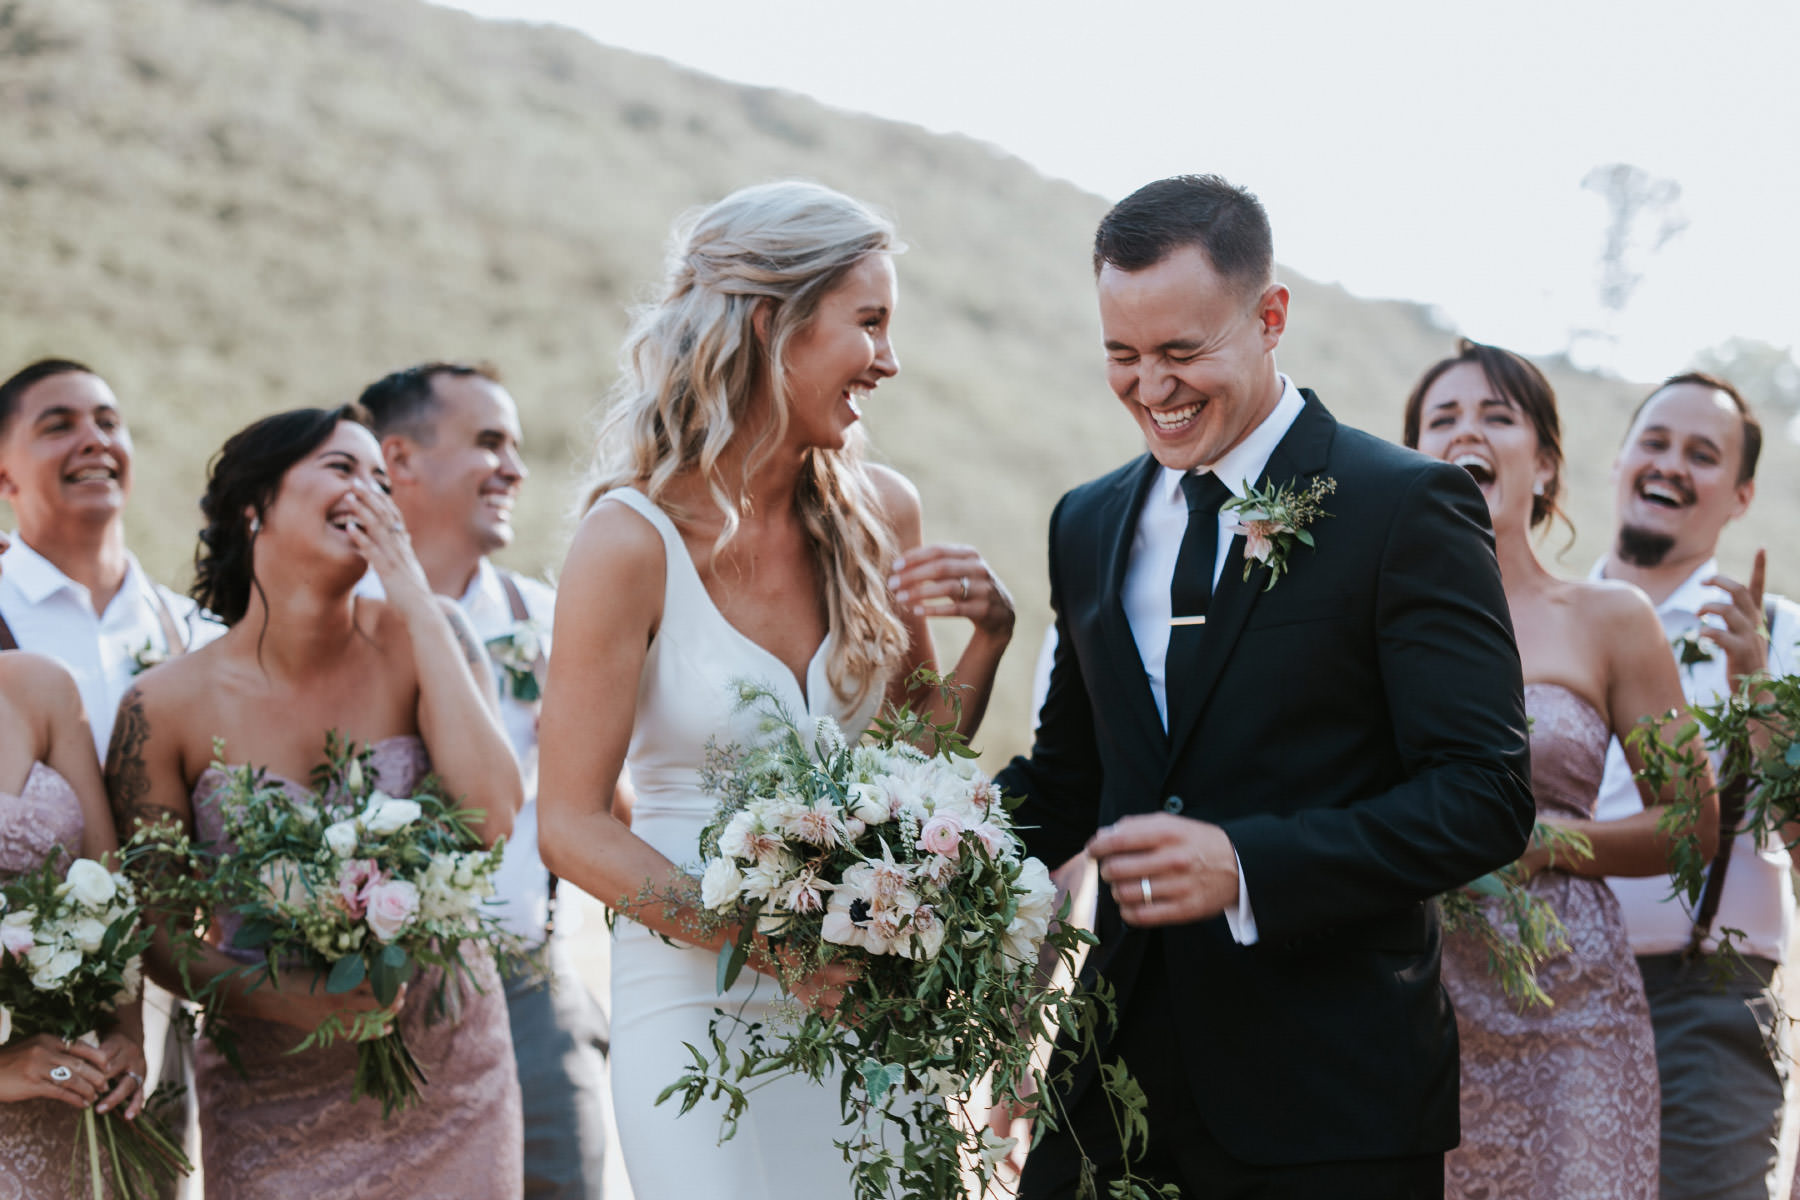 Candid of bride and groom laughing with bridal party